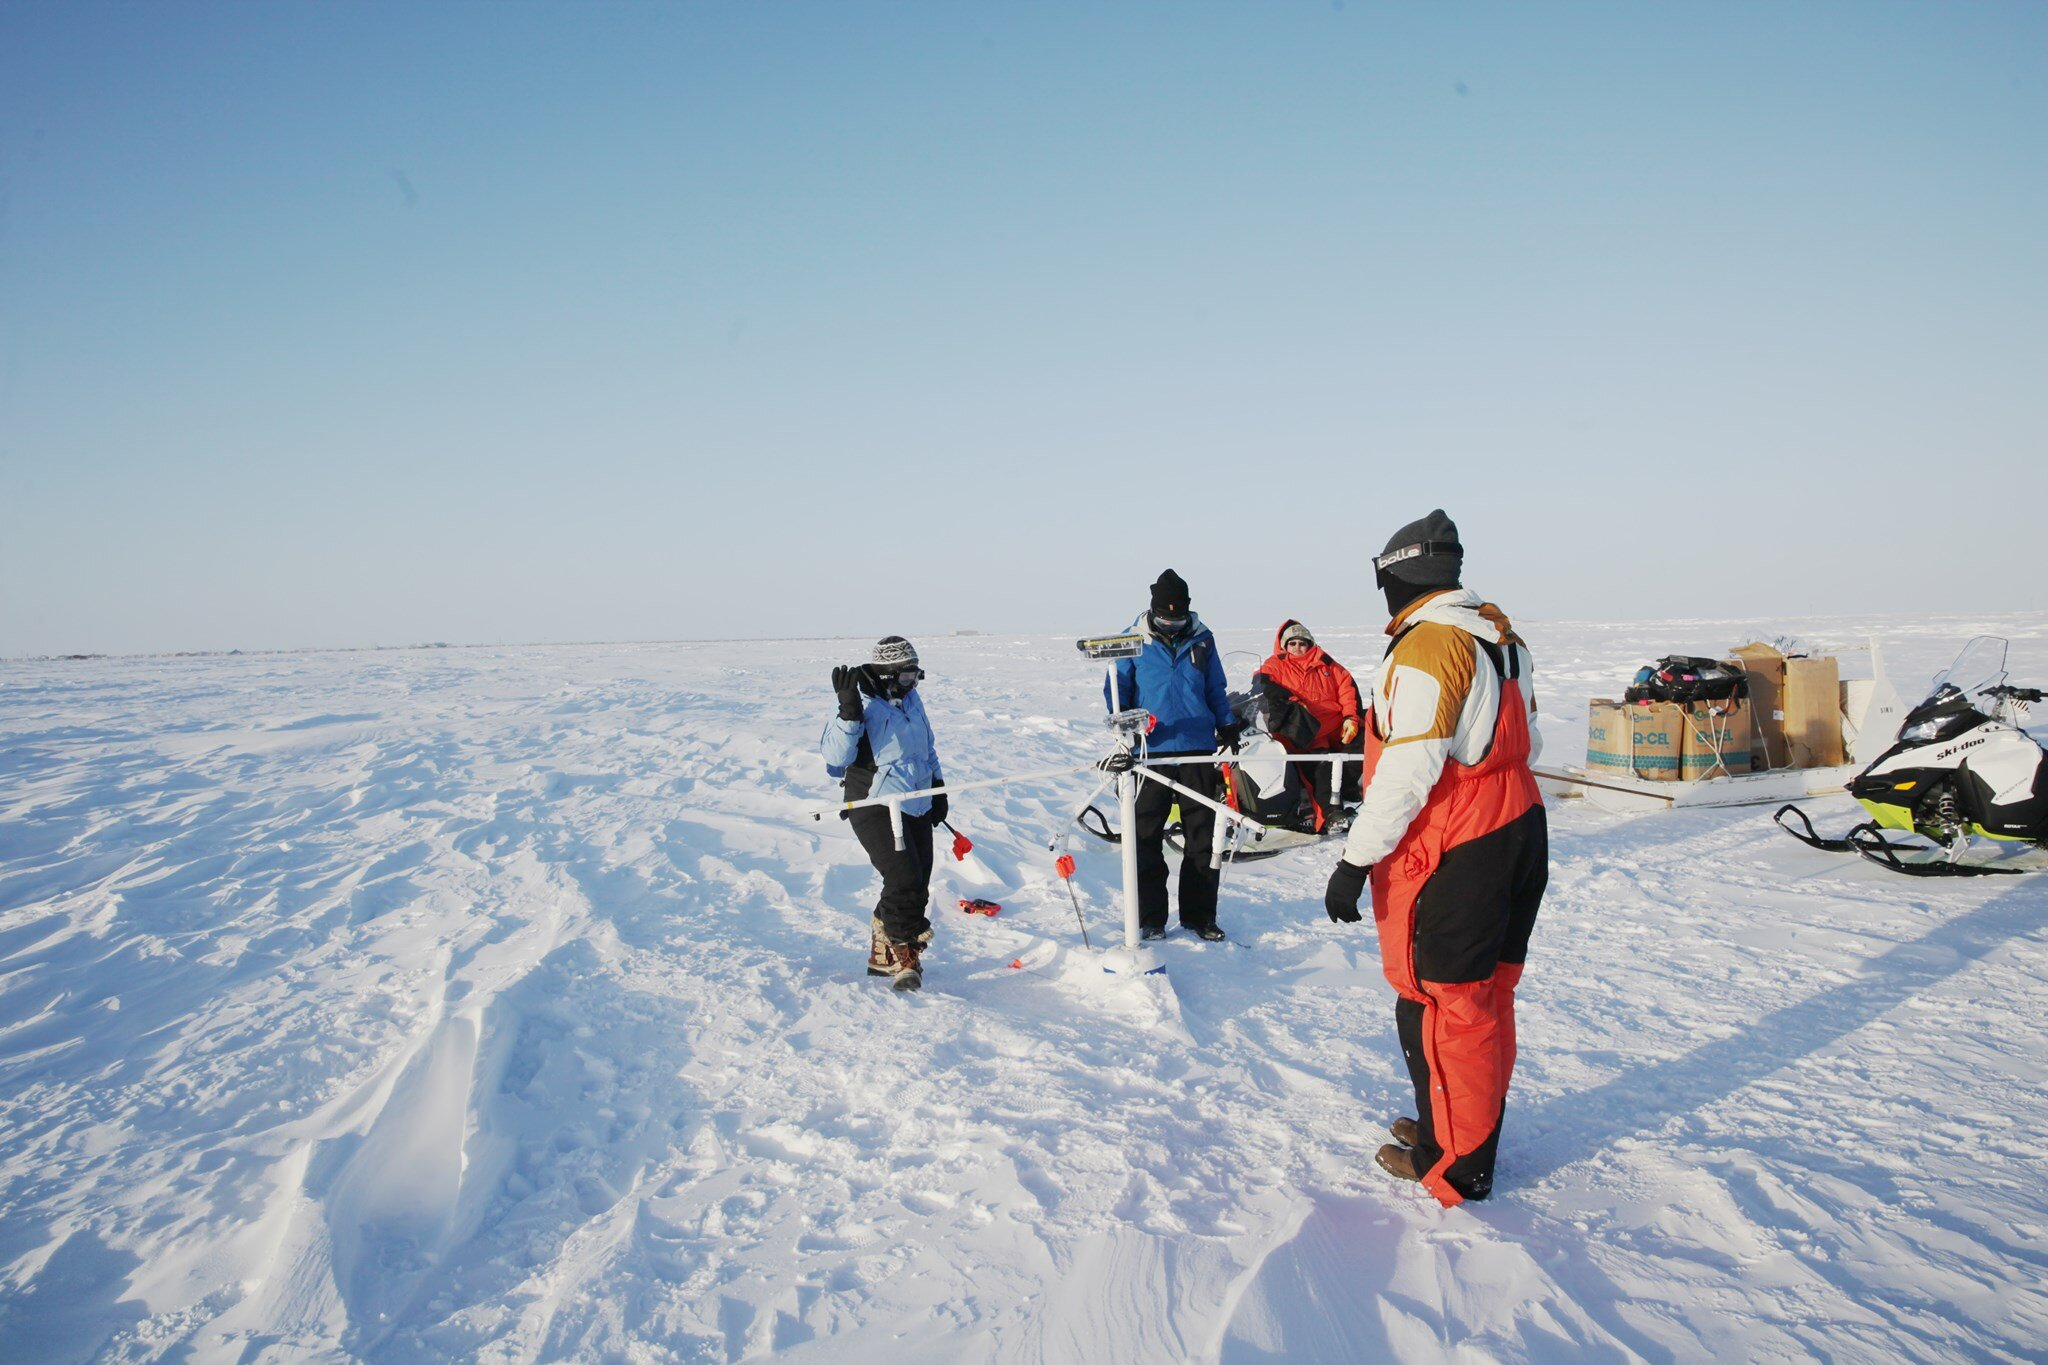 The Ice911 Research team at our Arctic Circle test site in Utqiaġvik, Alaska (also known as Barrow).